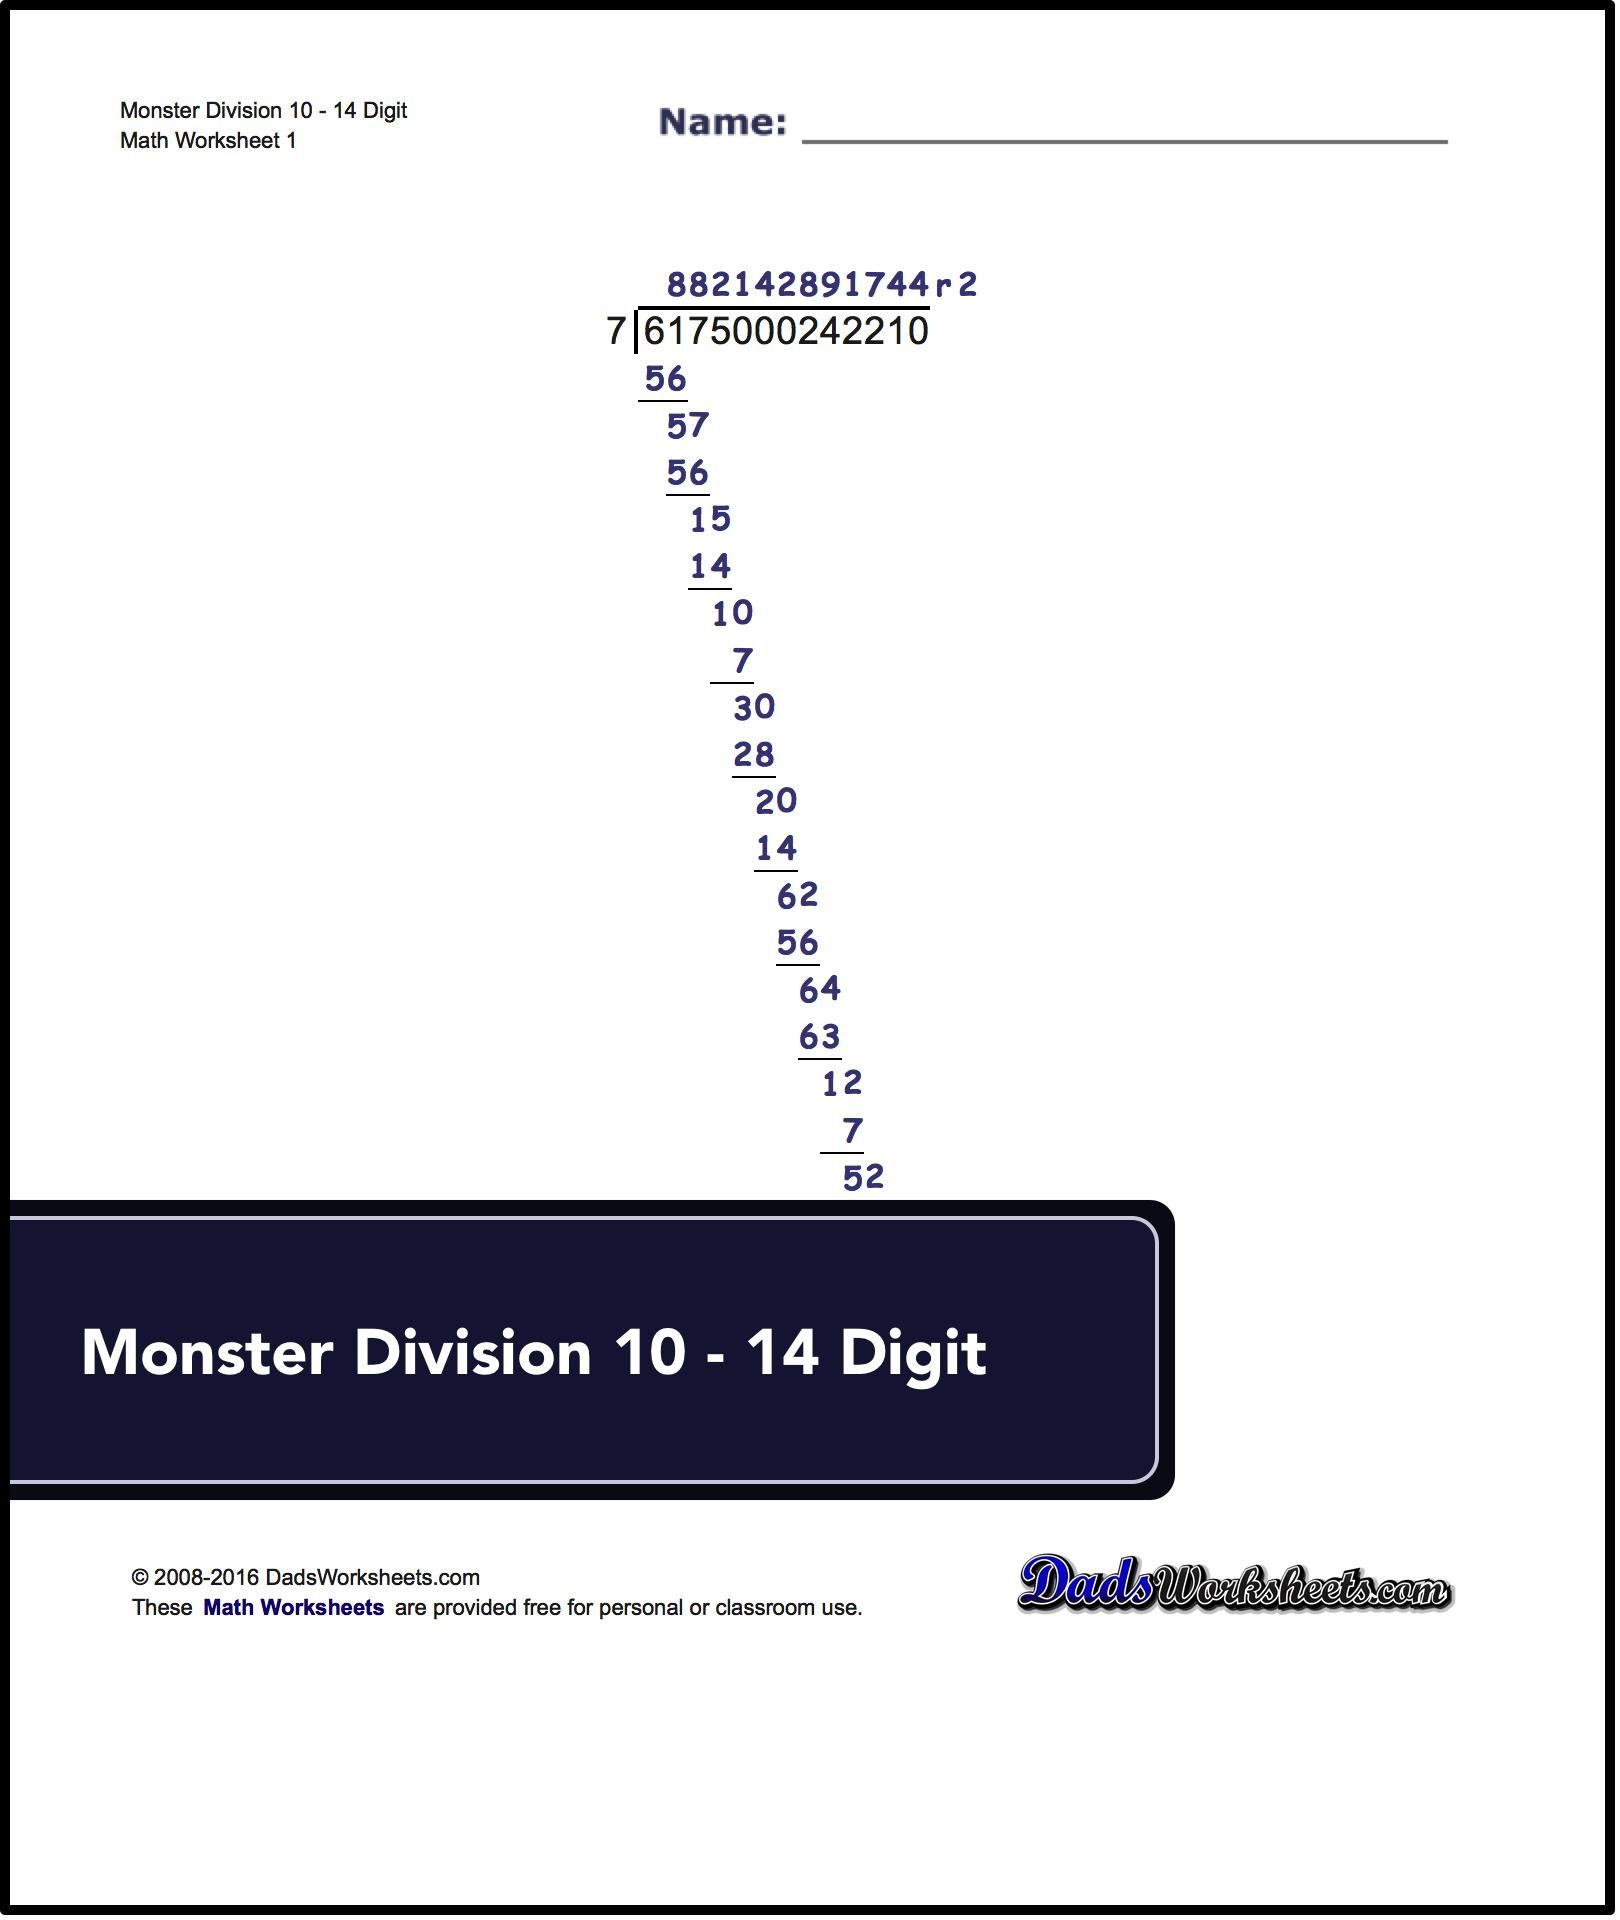 Long Division Worksheets For Monster Division 10